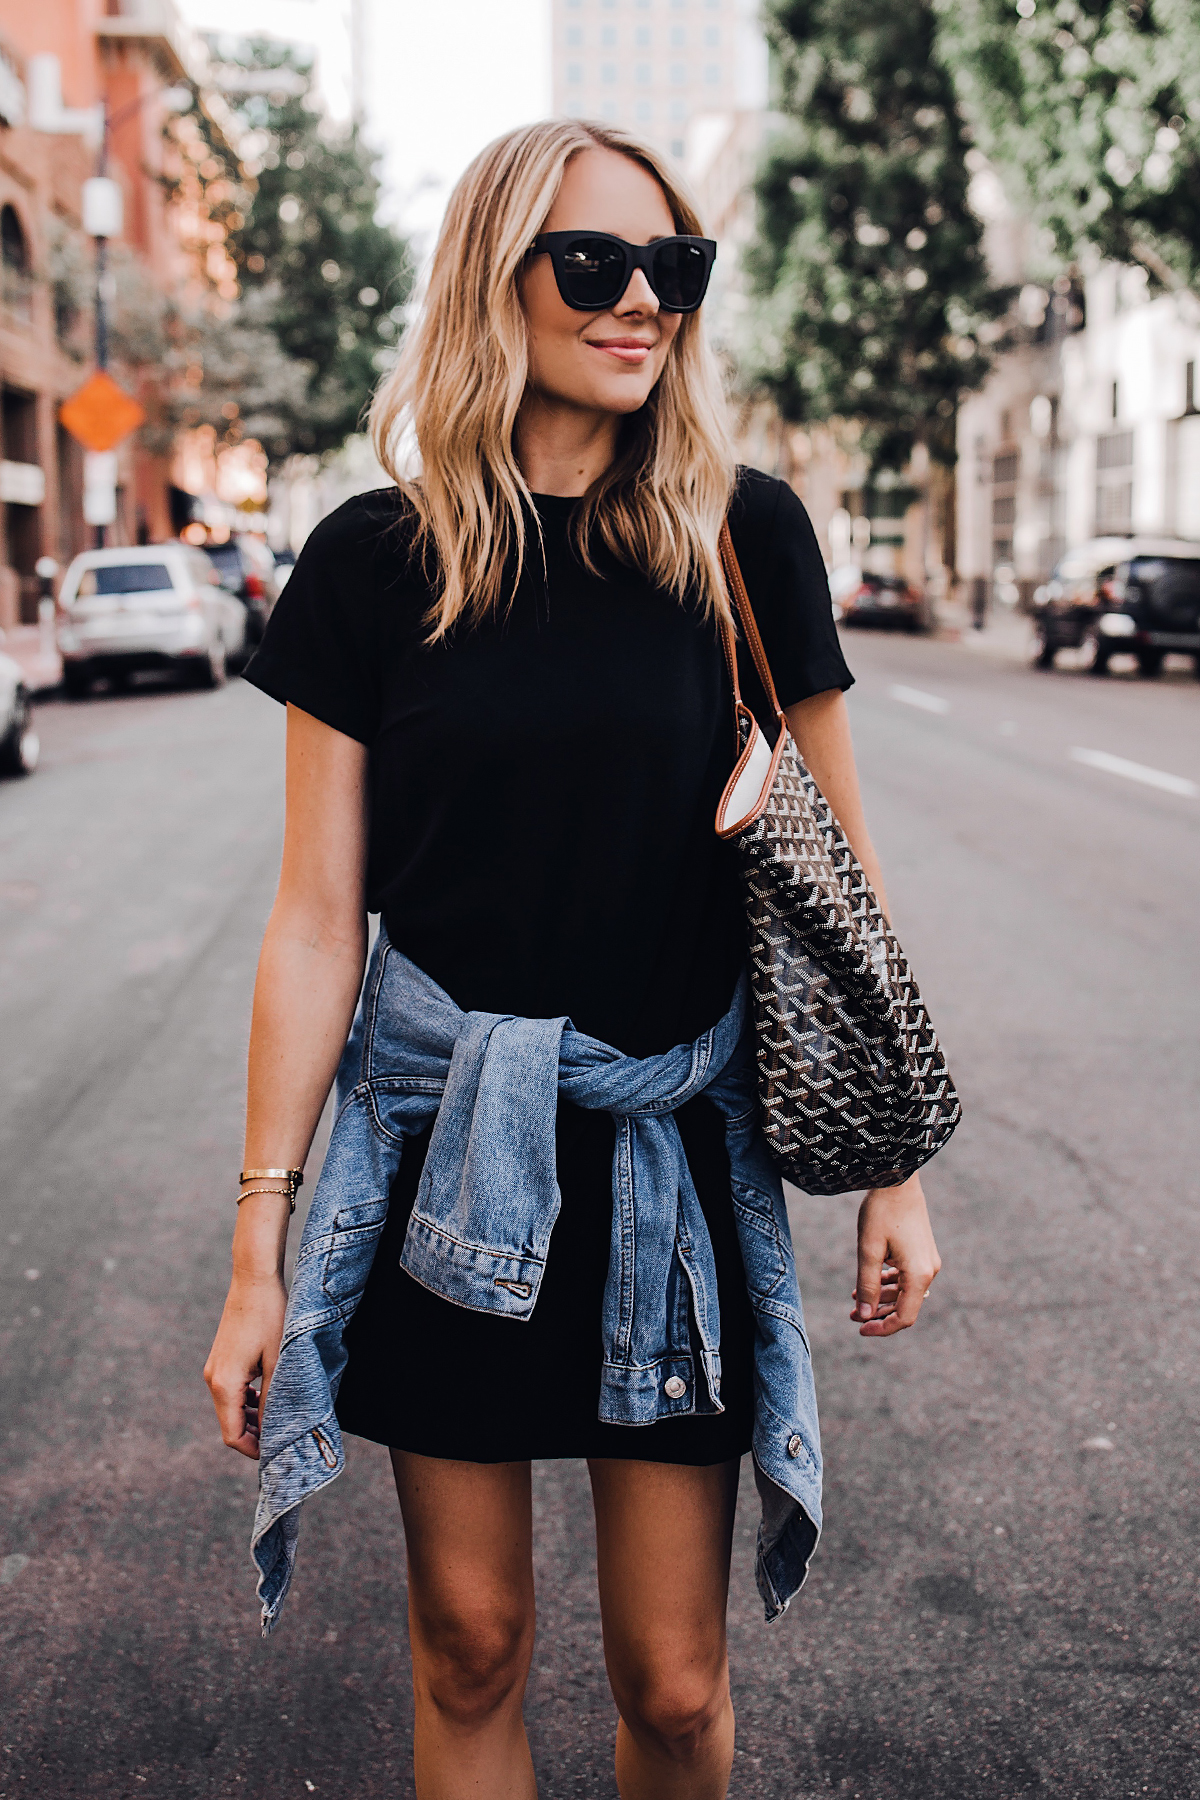 Blonde Woman Wearing Fashion Jackson Short Sleeve Black Dress Denim Jacket Goyard Tote Black Sunglasses Fashion Jackson San Diego Fashion Blogger Street Style